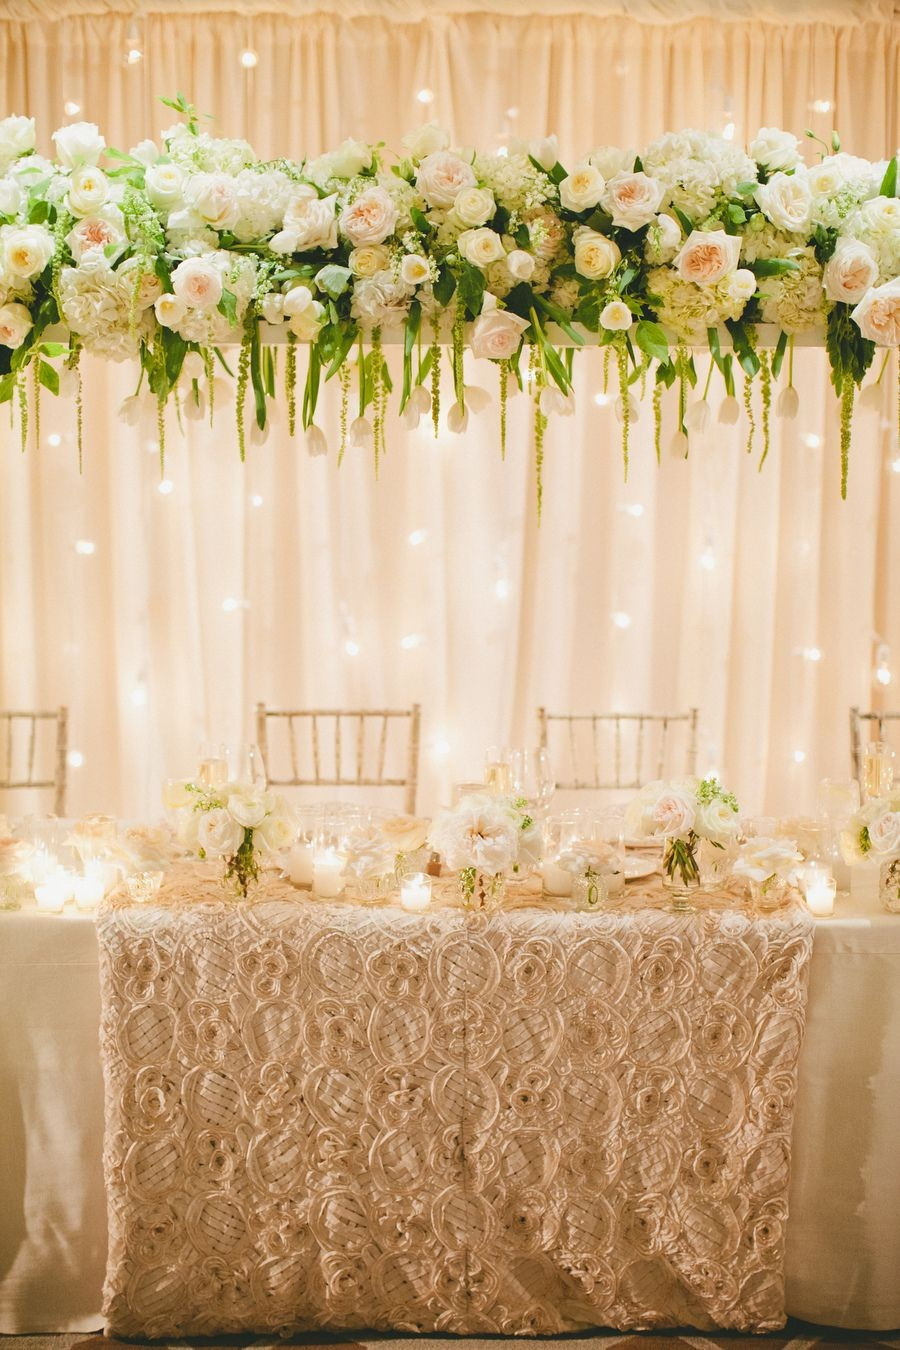 vase rental nyc of 30 new wedding decor rentals near me robotoptionsbinaire com for wedding decor rentals near me inspirational classic white wedding with a stunning floral installation